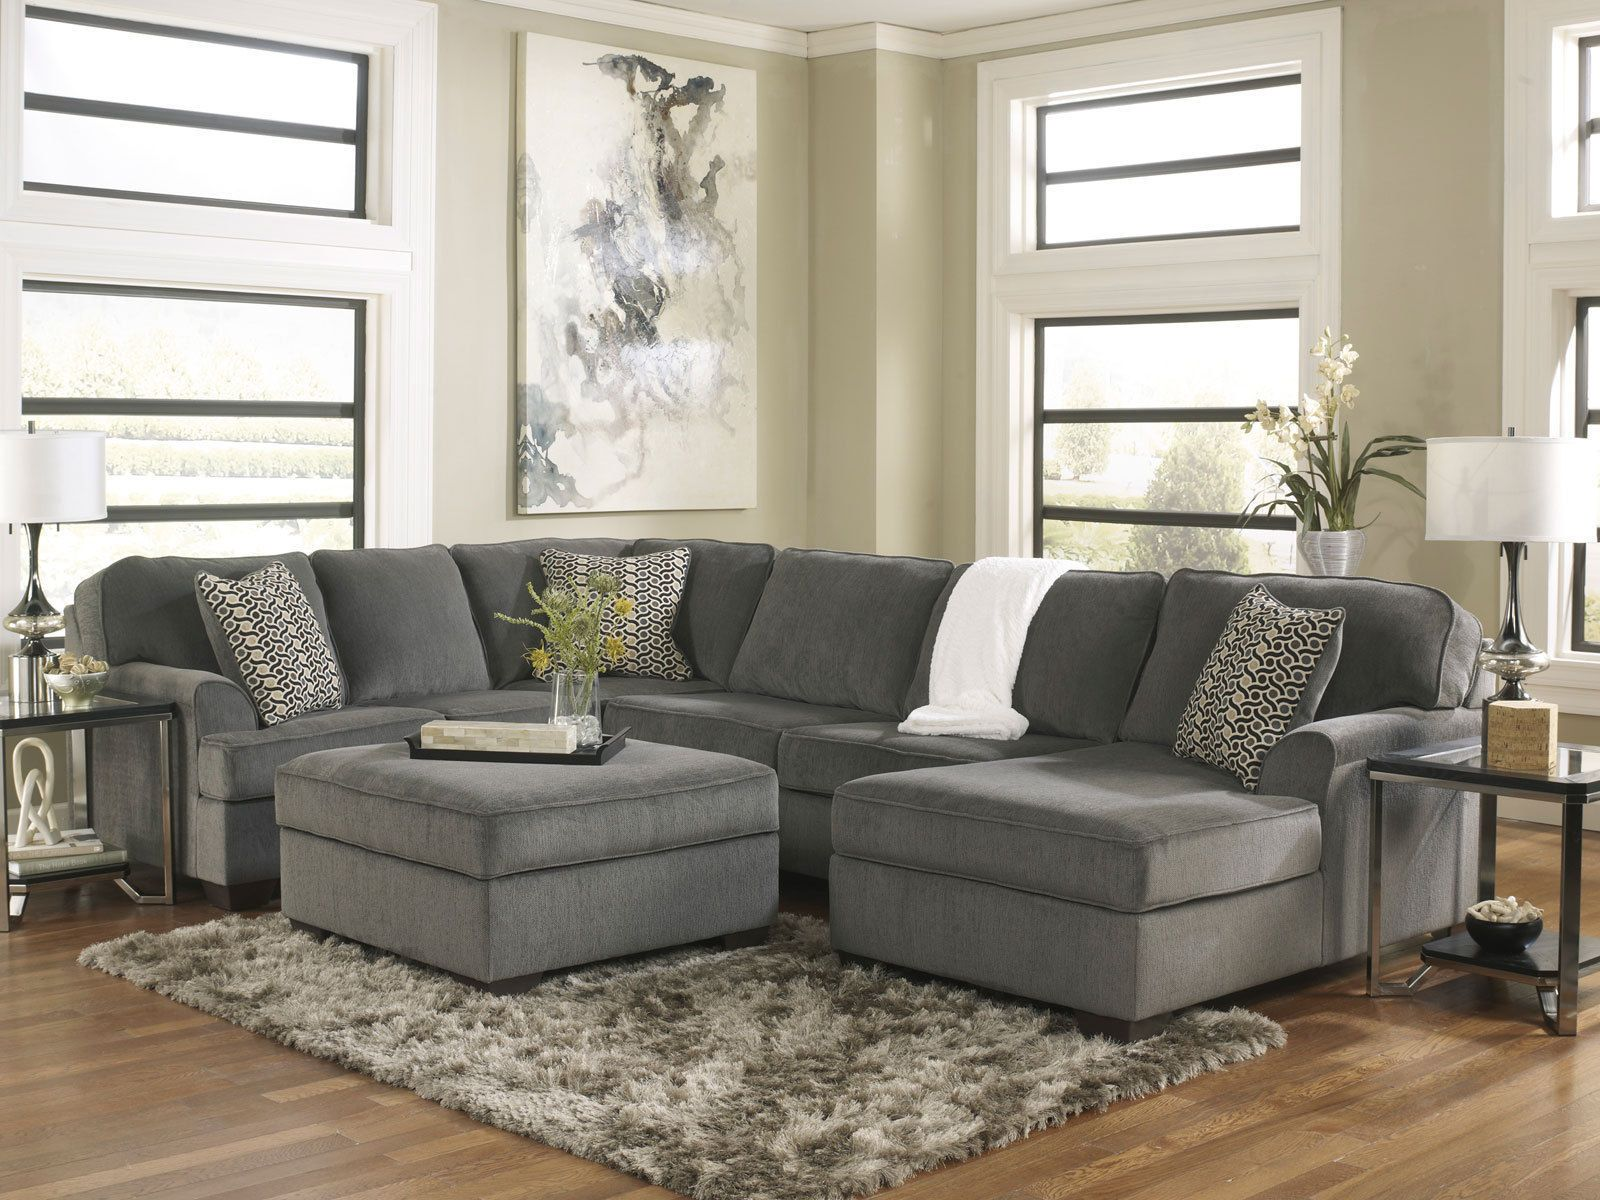 set of design oversized size reclining leather furniture sofa lane living full recliner sectional online room chair